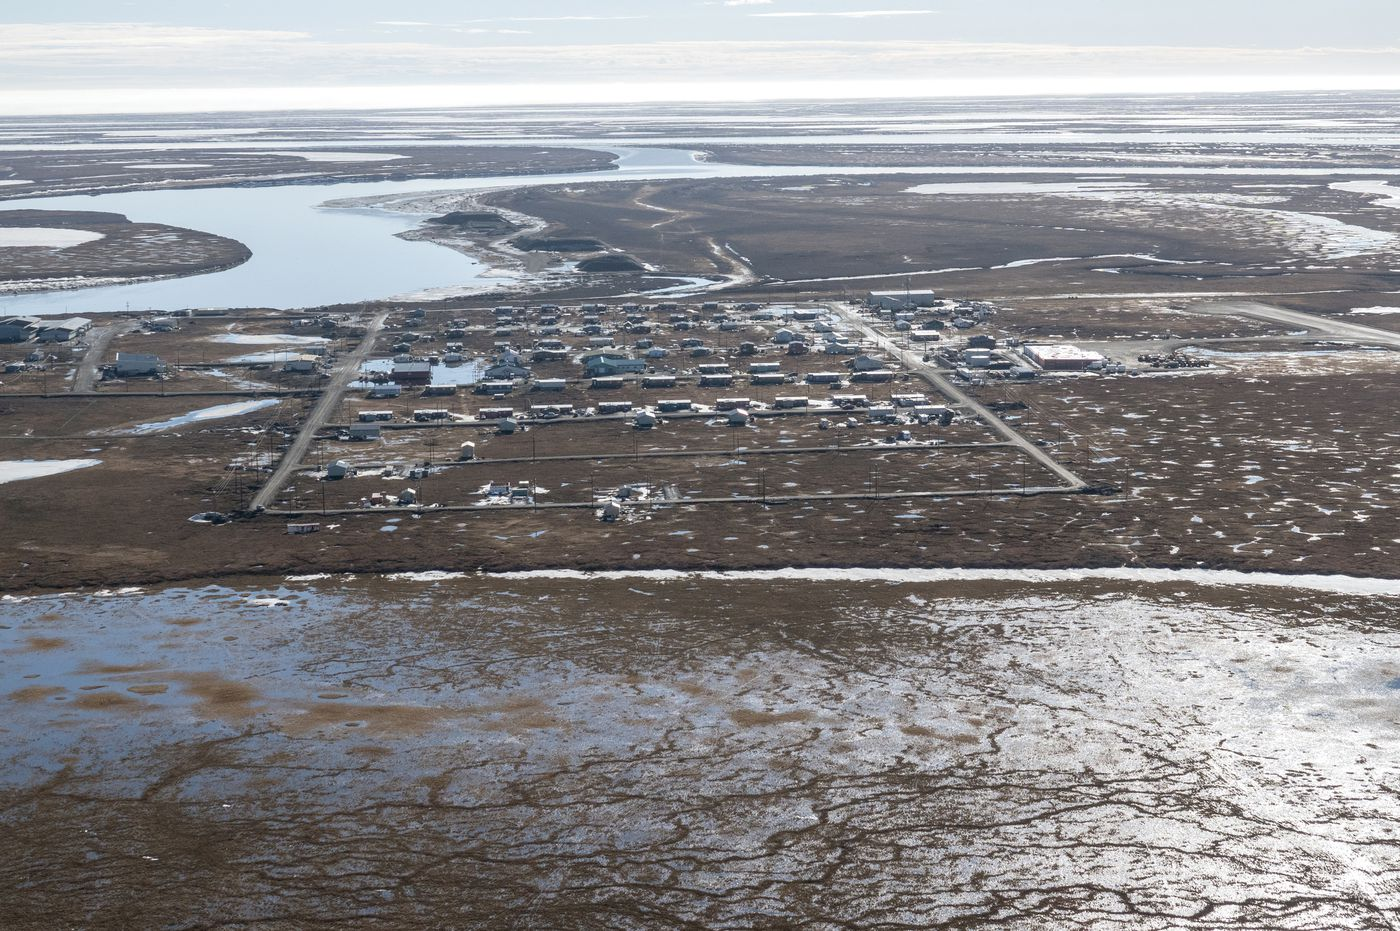 Nuiqsut, resettled in 1973 when 27 families pitched tents by the Colville River, now has roughly 480 residents. (Washington Post photo by Bonnie Jo Mount)